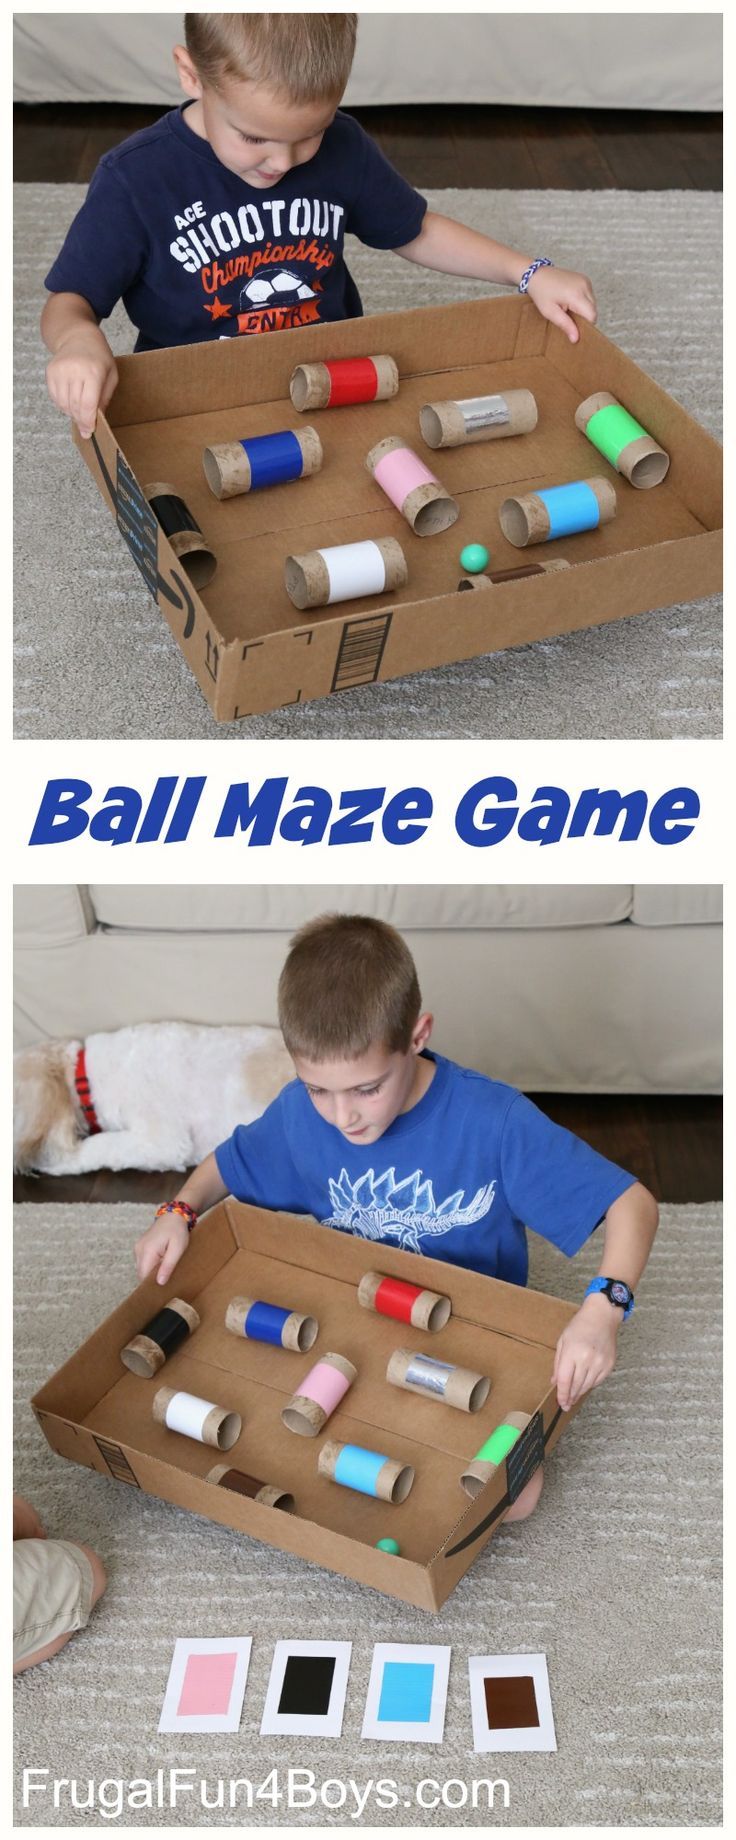 Make a Ball Maze Hand-Eye Coordination Game – Great boredom buster for kids!